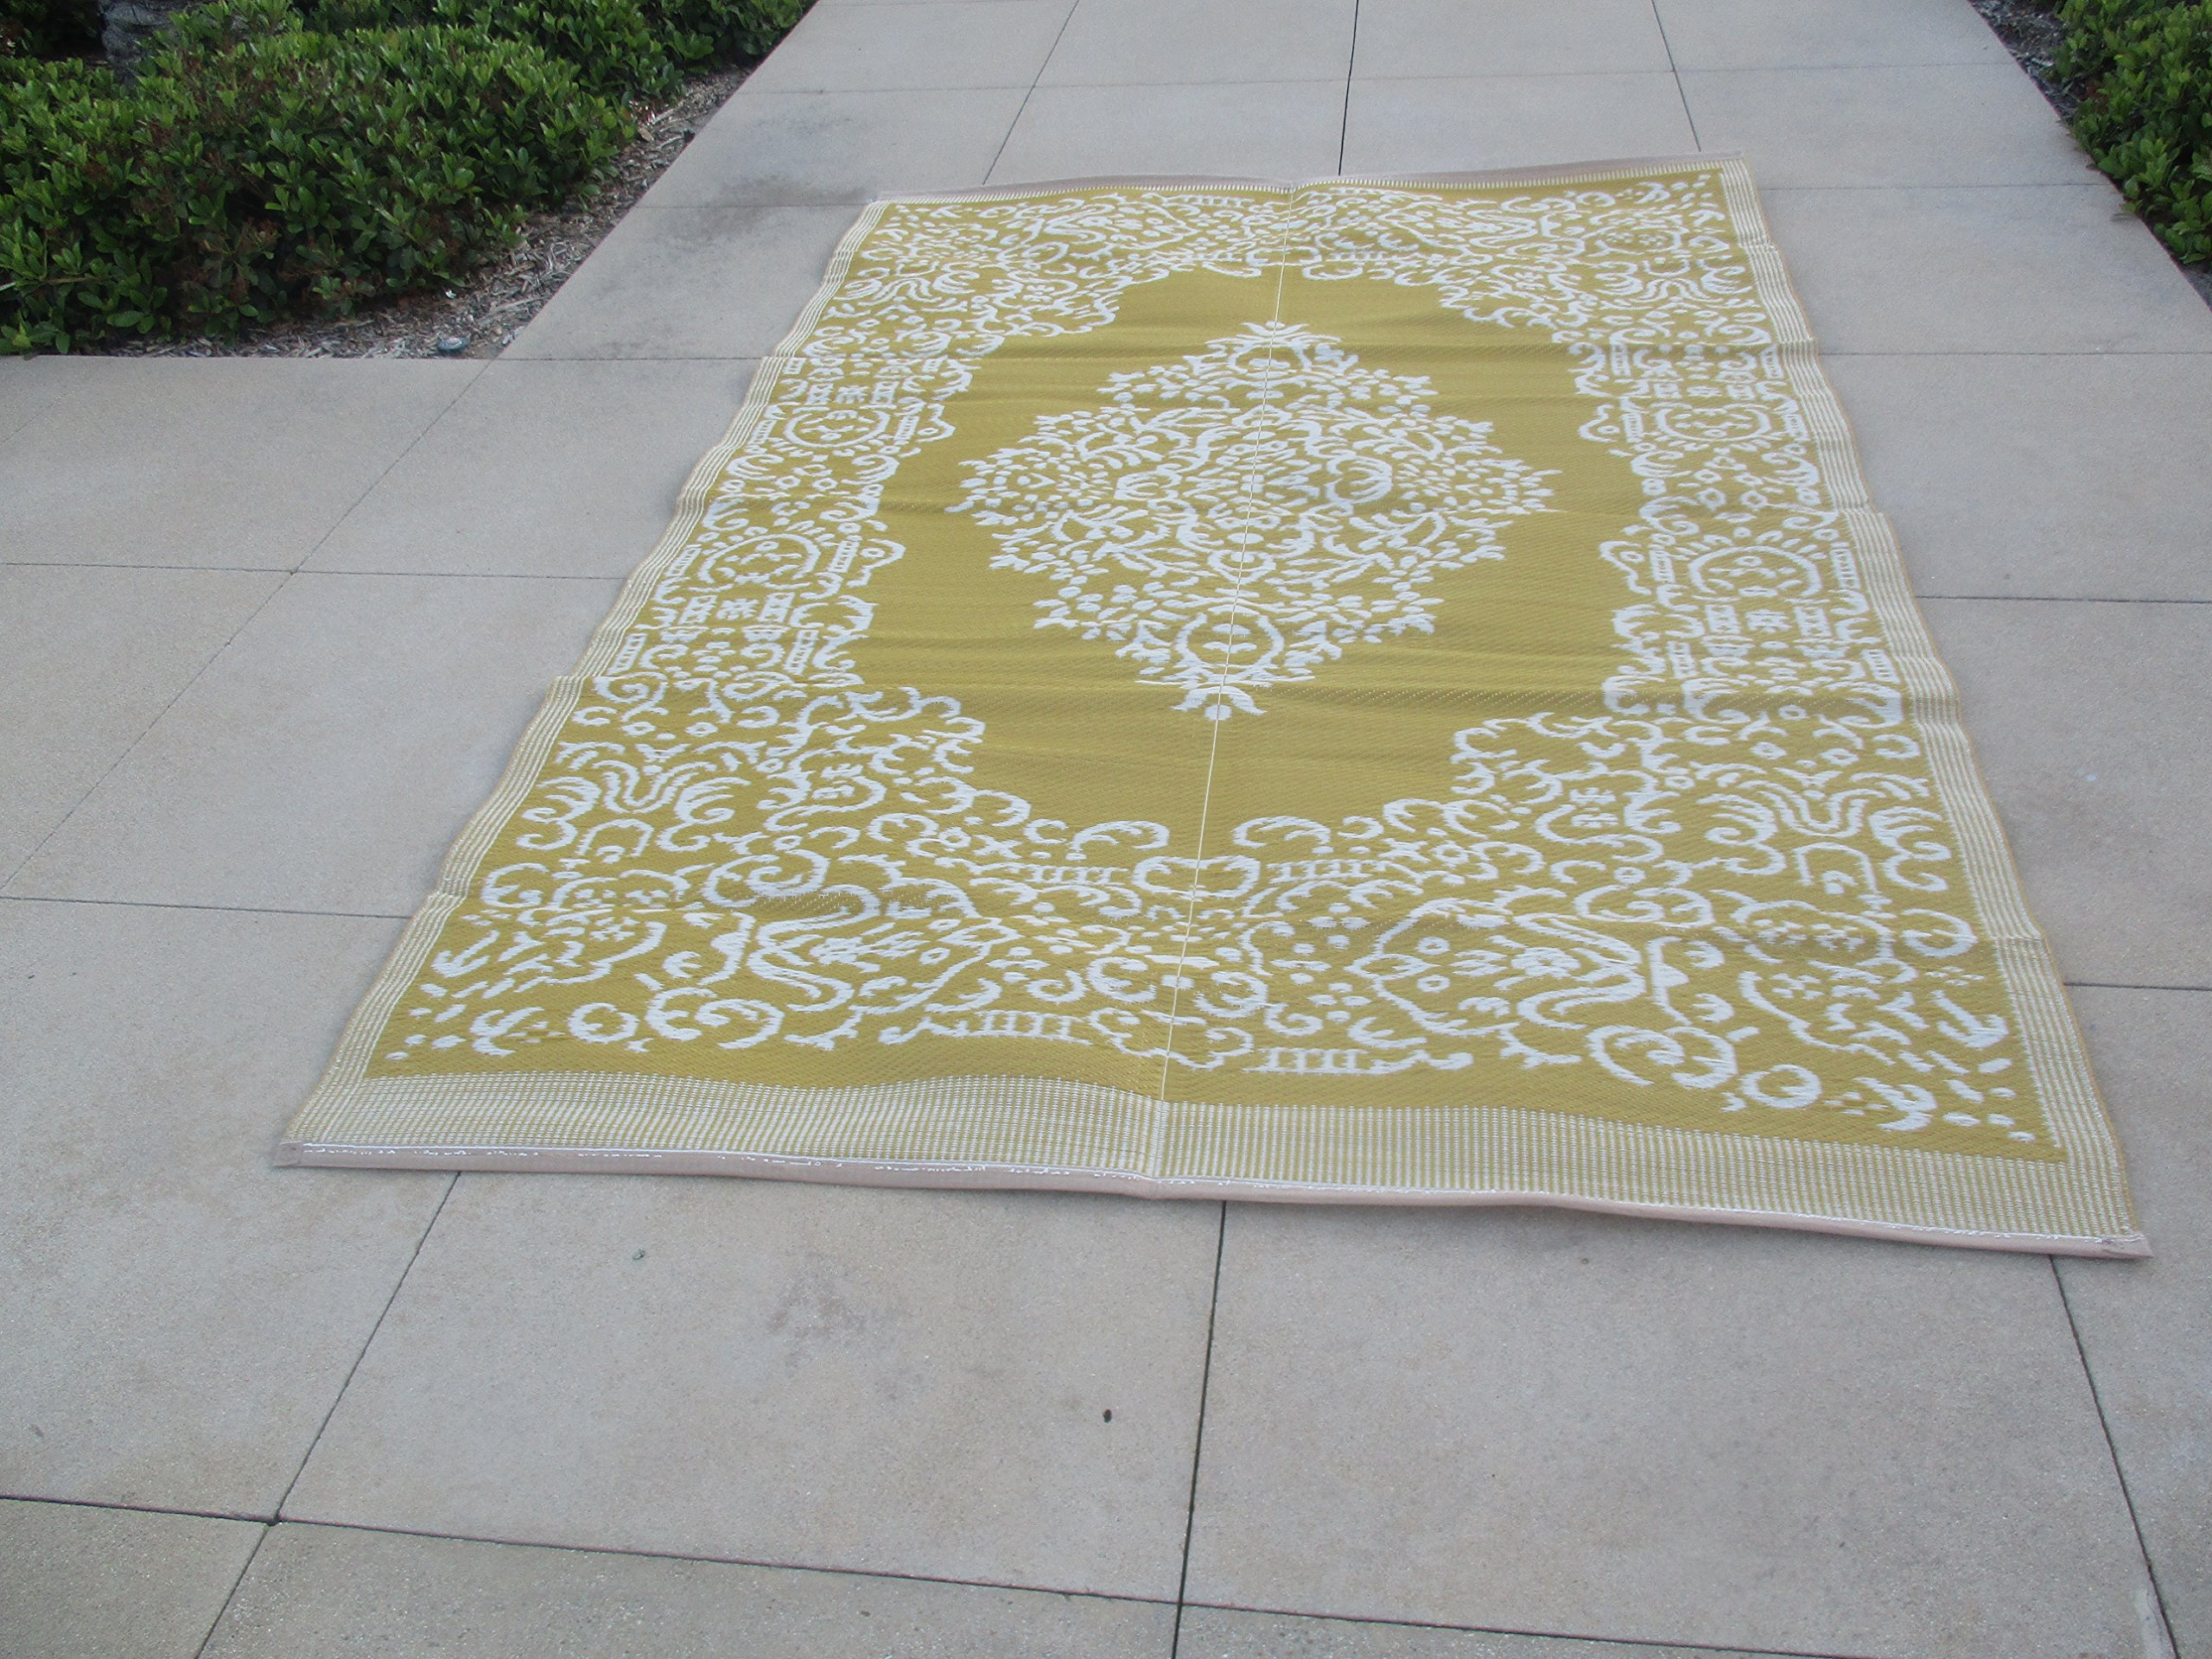 Lightweight Indoor Outdoor Reversible Plastic Area Rug - 5.9 x 8.9 Feet - Medallion Oriental Design - Light Mustard/White